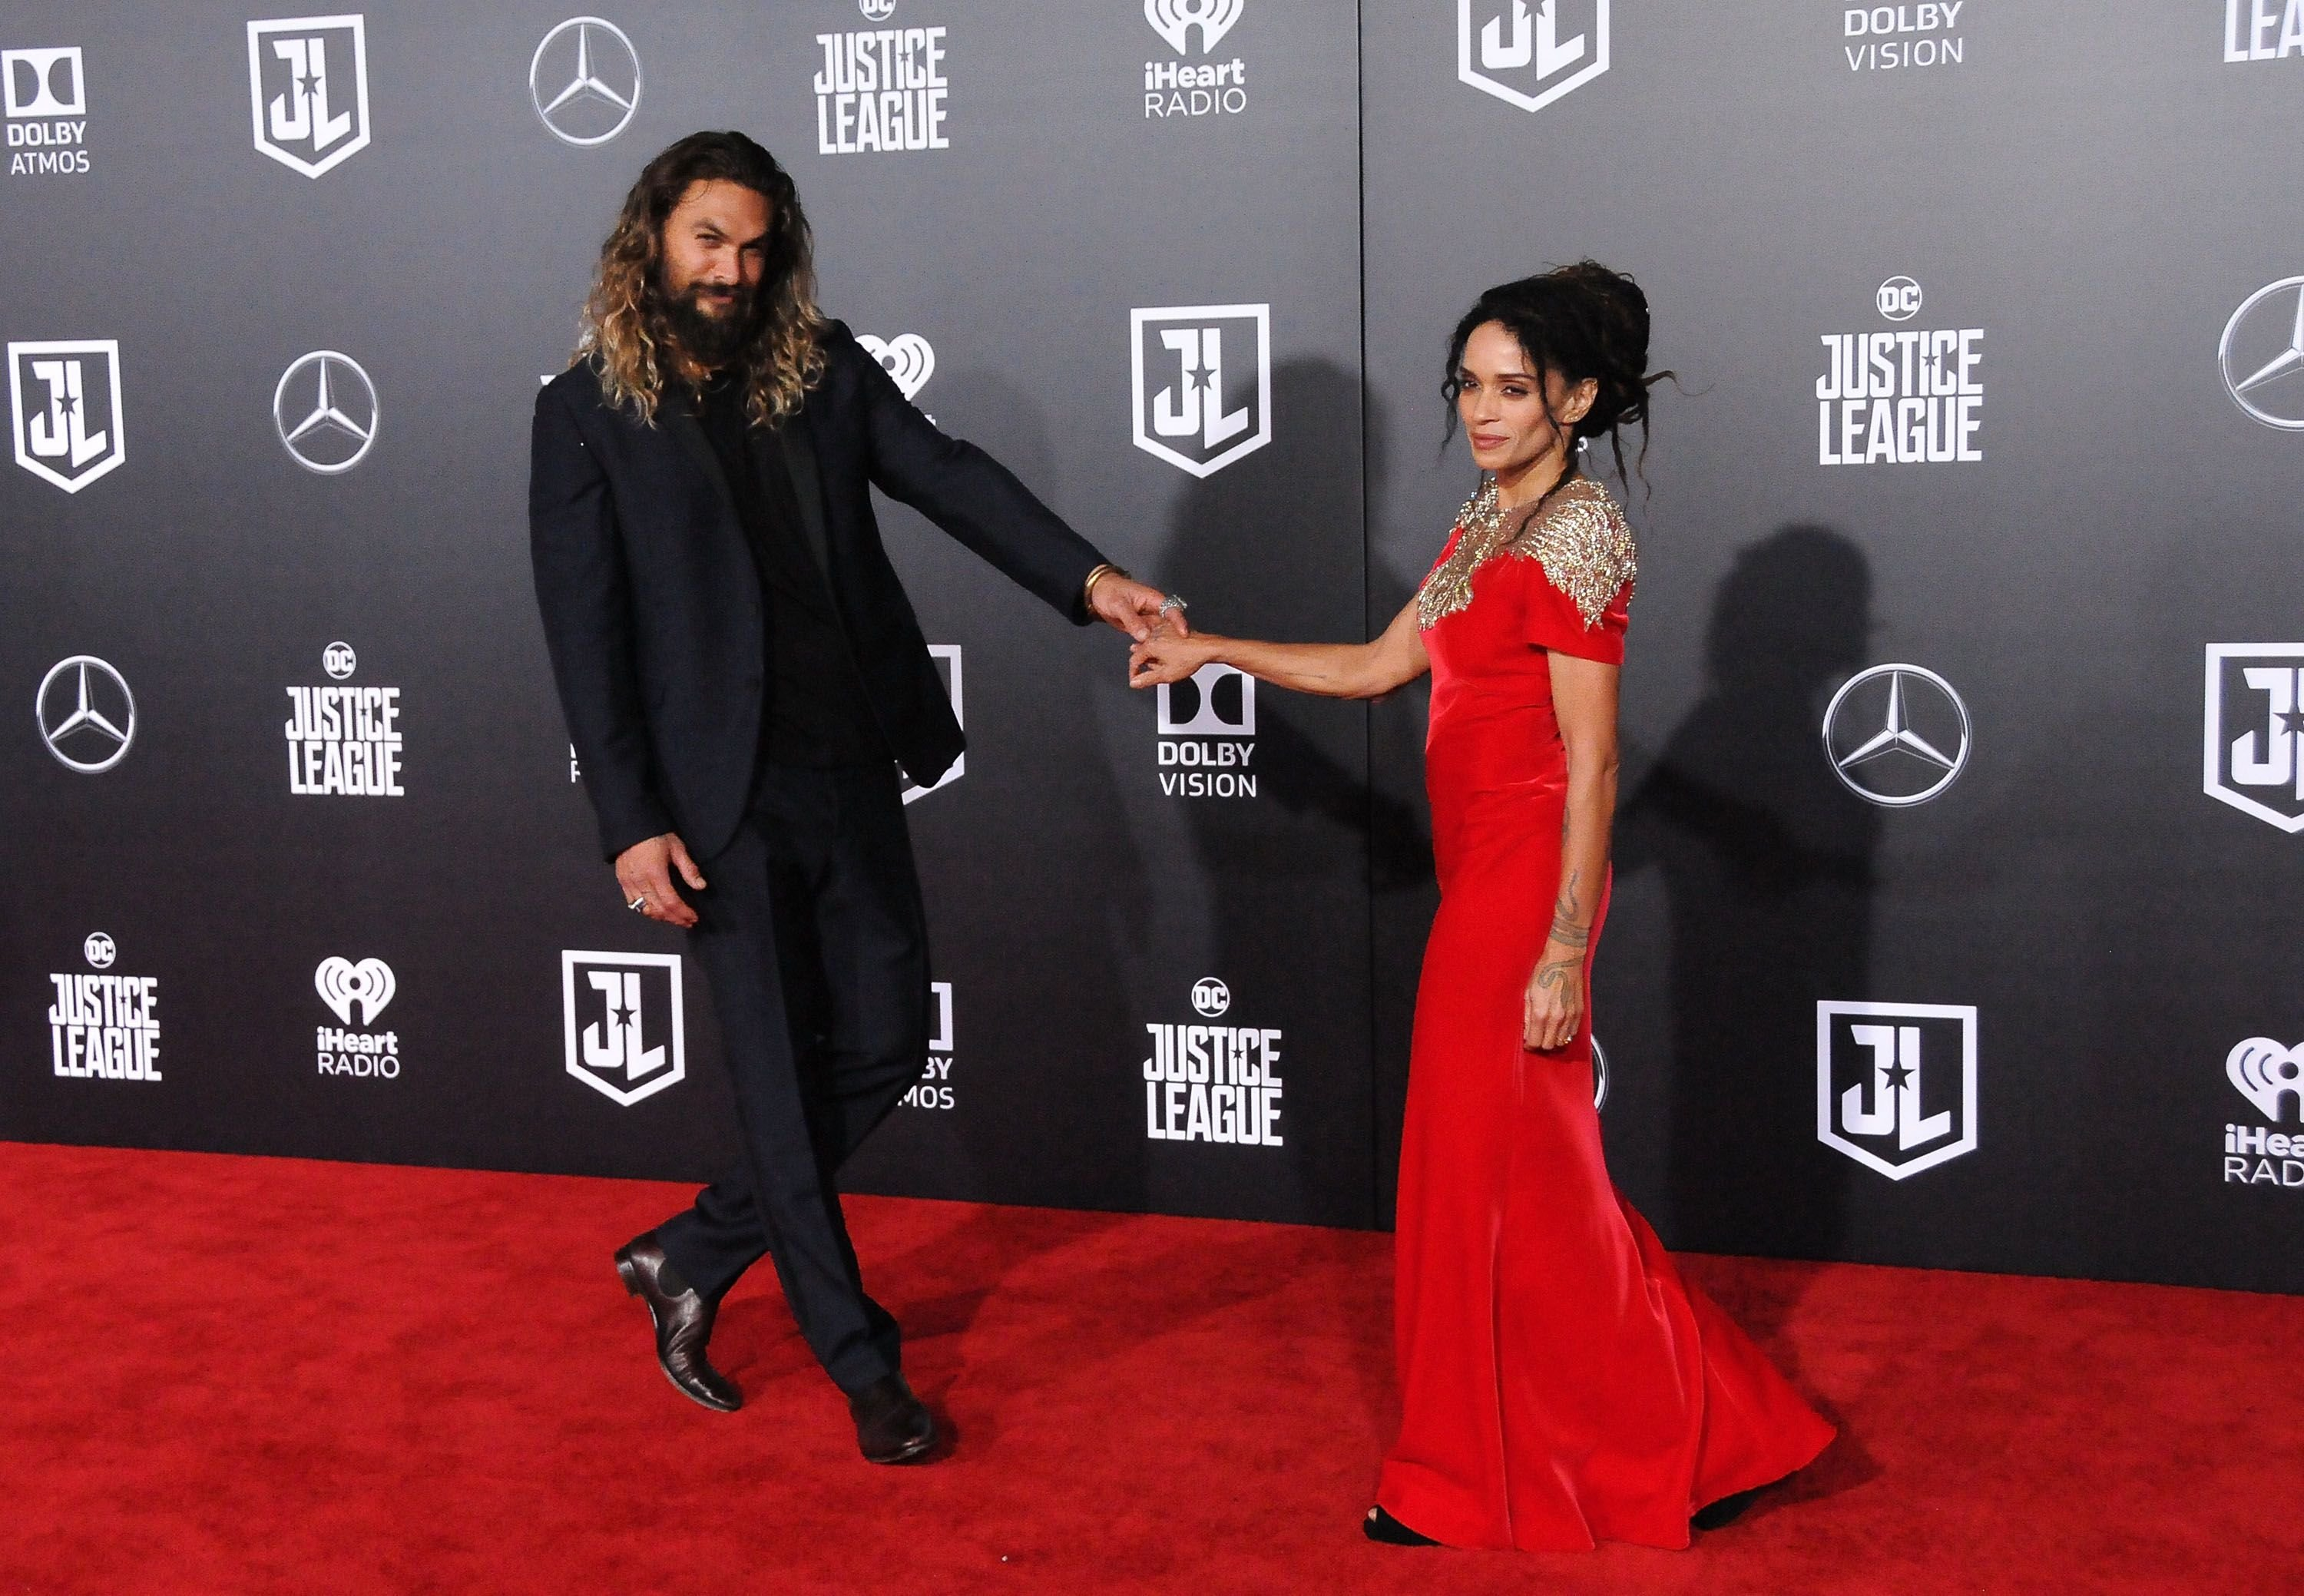 Jason's dream came true when he met Lisa Bonet in real life / Getty Images